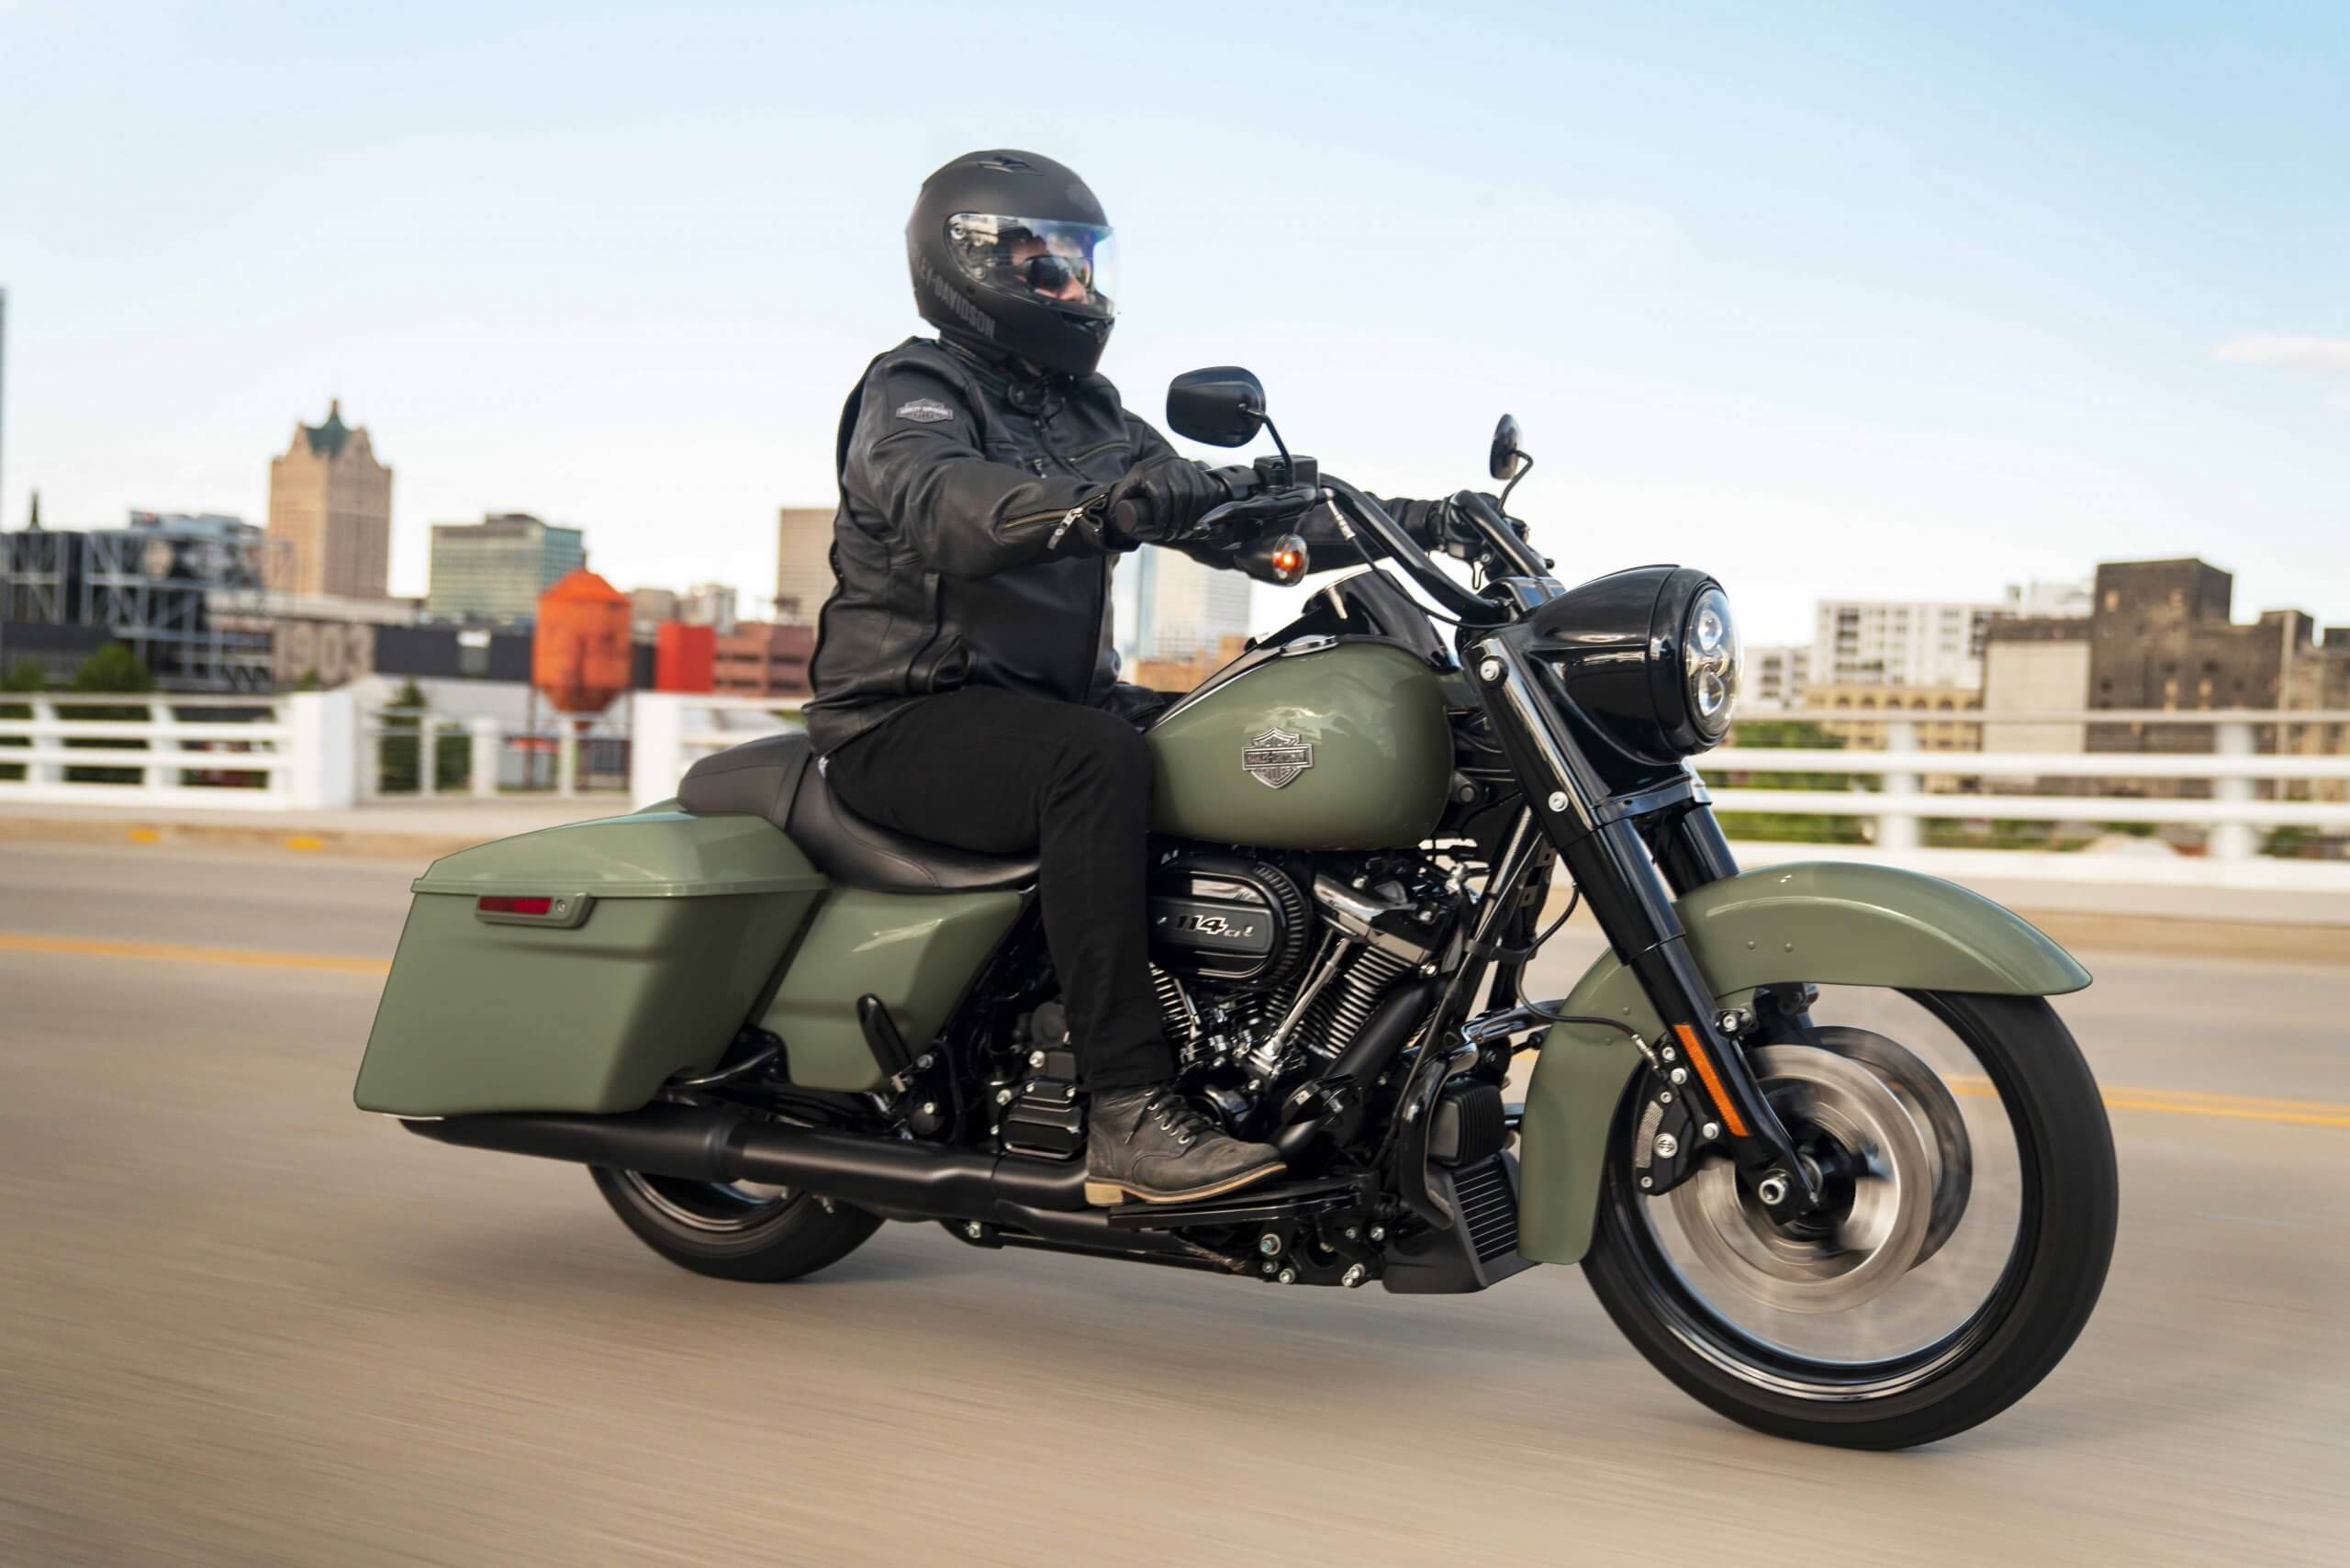 Milwaukee-Eight® 114 V-Twin engine and Prodigy™ wheels